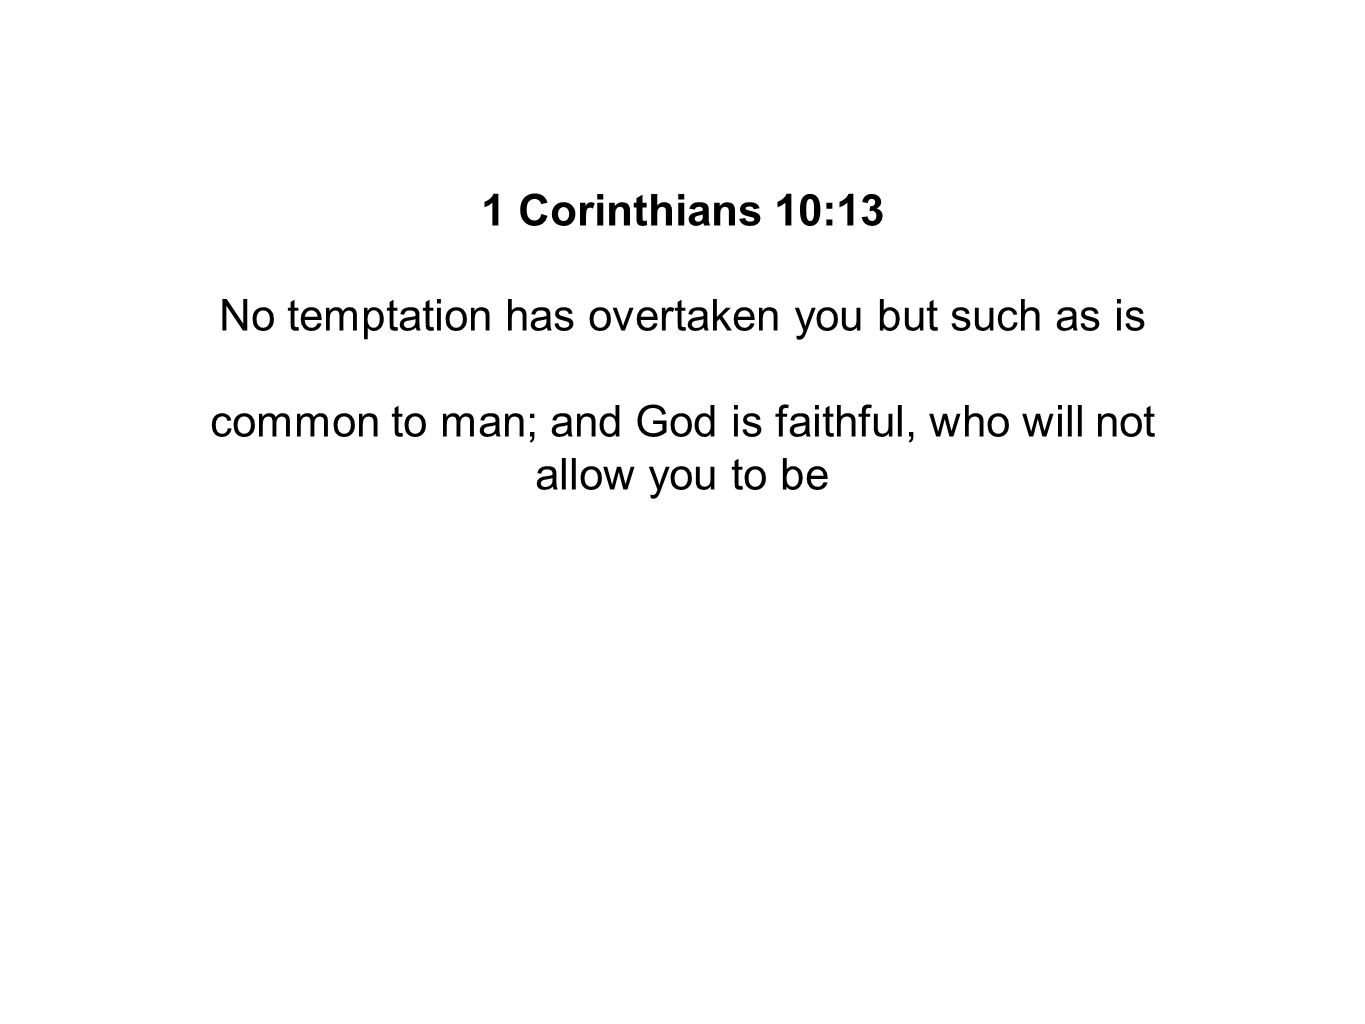 1 Corinthians 10:13 No temptation has overtaken you but such as is common to man; and God is faithful, who will not allow you to be